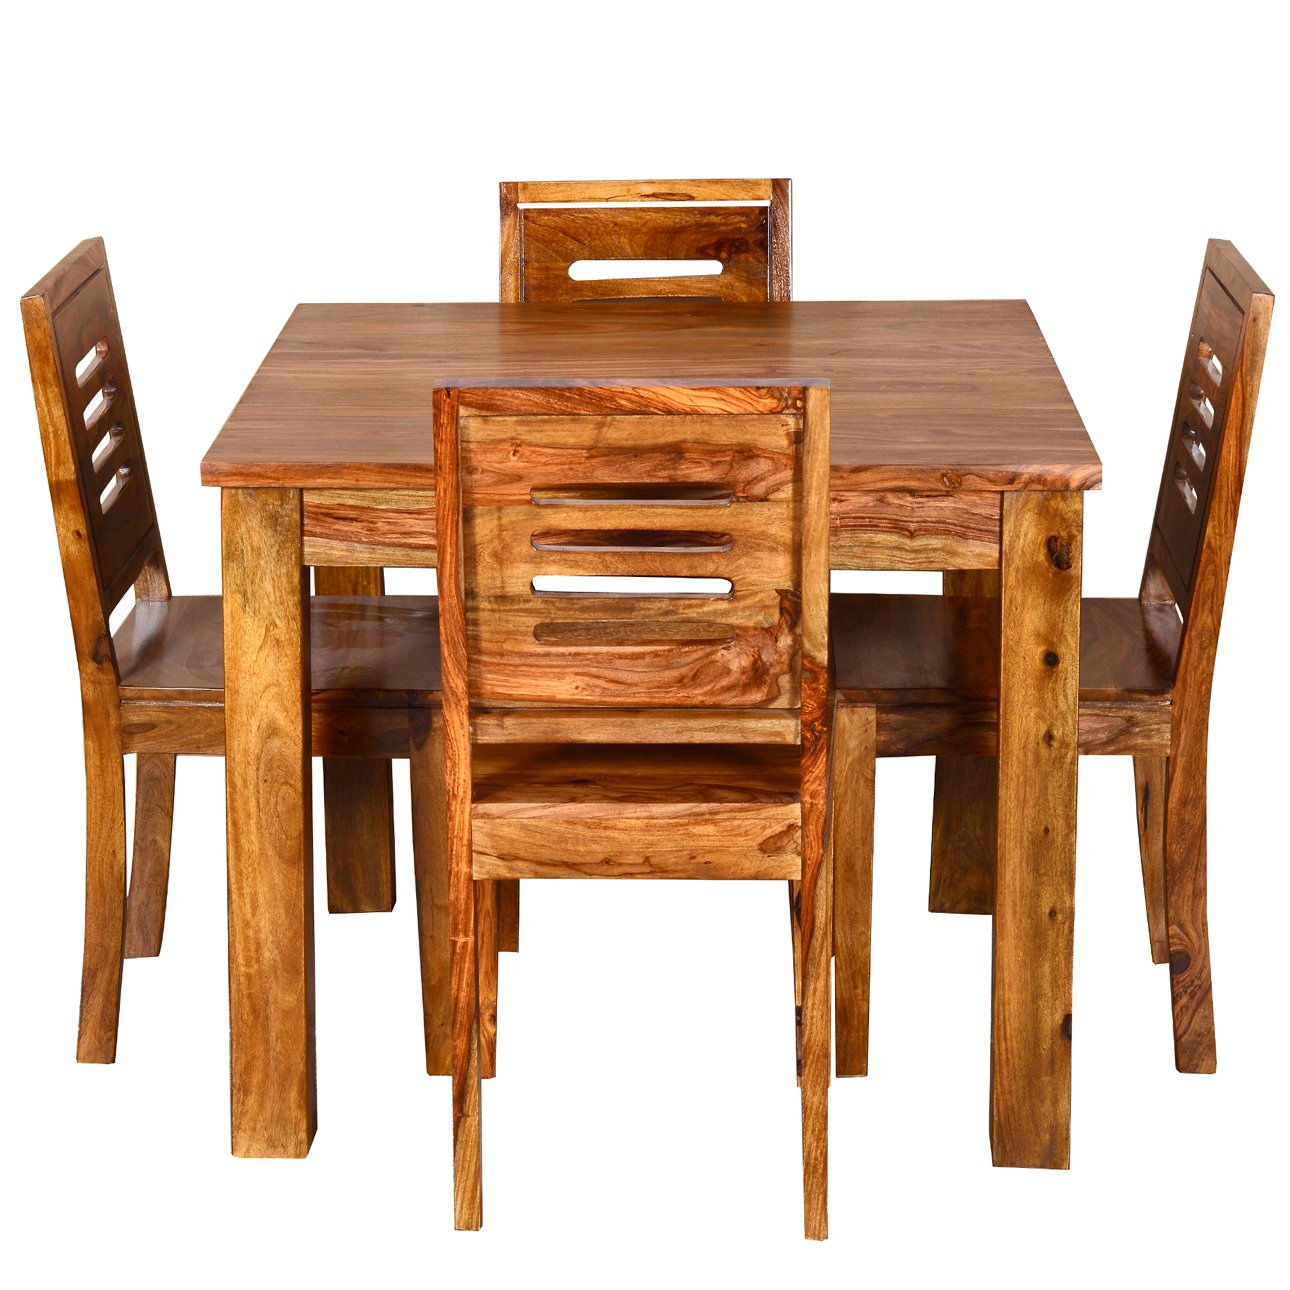 Ringabell Square Four Seater Solid Wood Dining Table (Brown): Amazon.in:  Home U0026 Kitchen